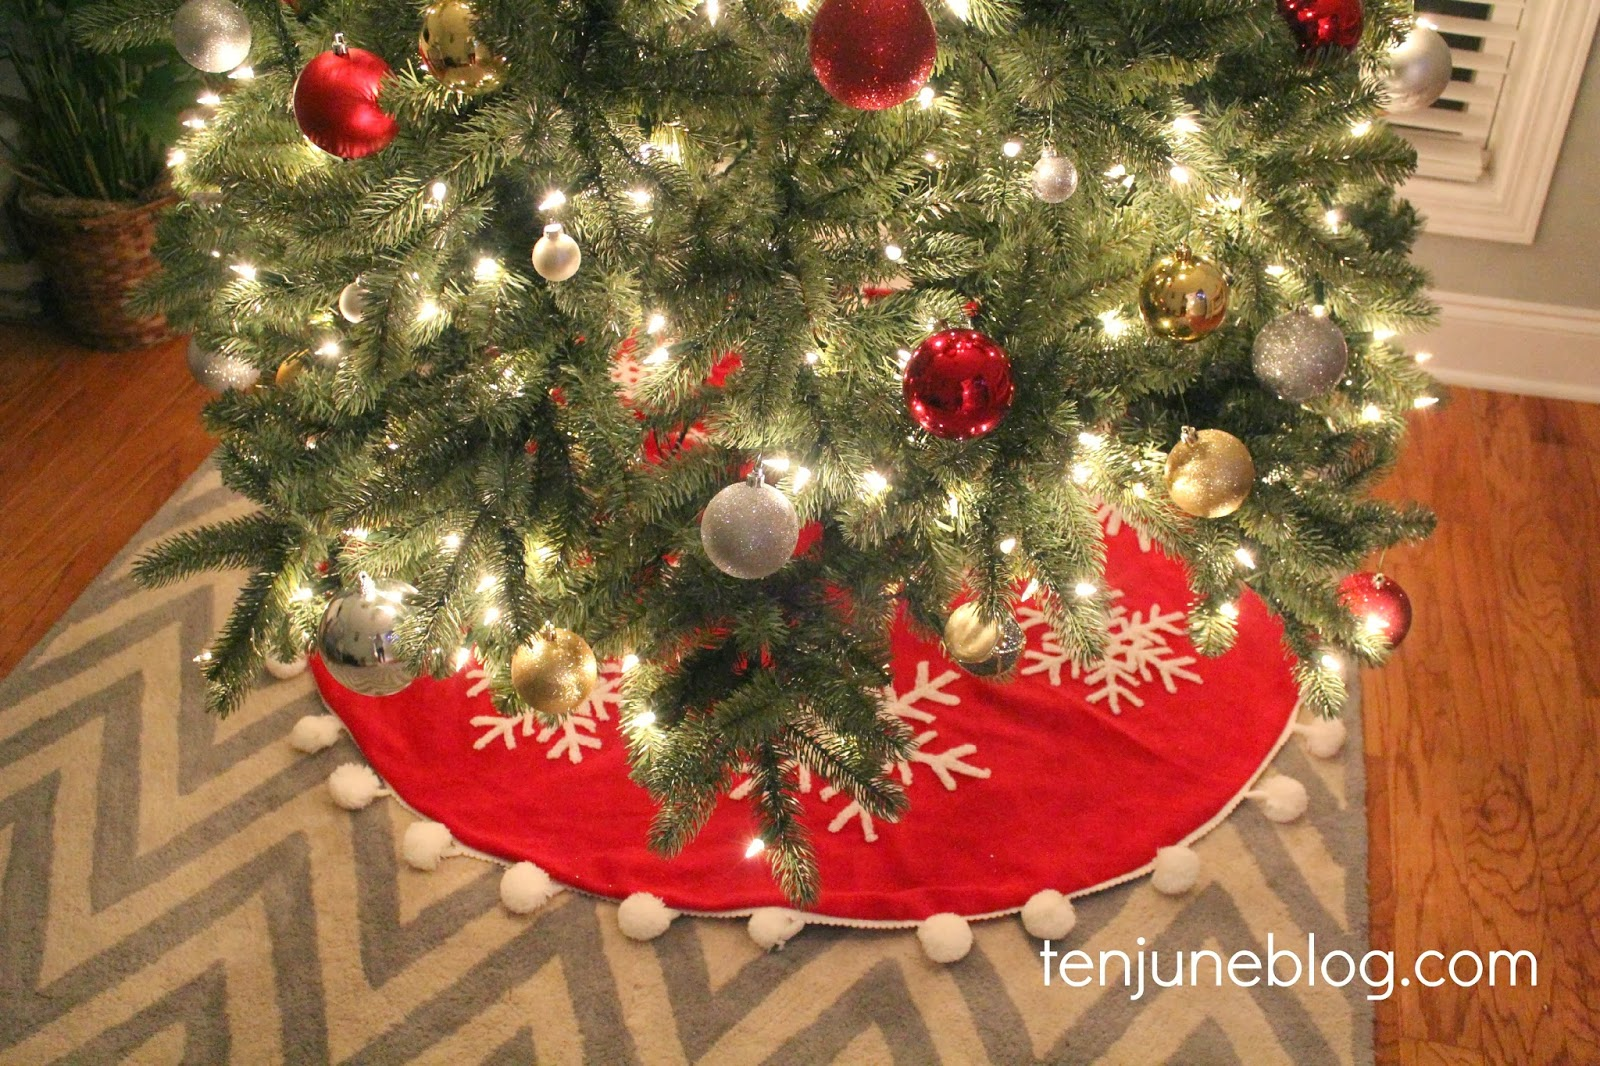 Ten June: Red + Silver + Gold Christmas Tree